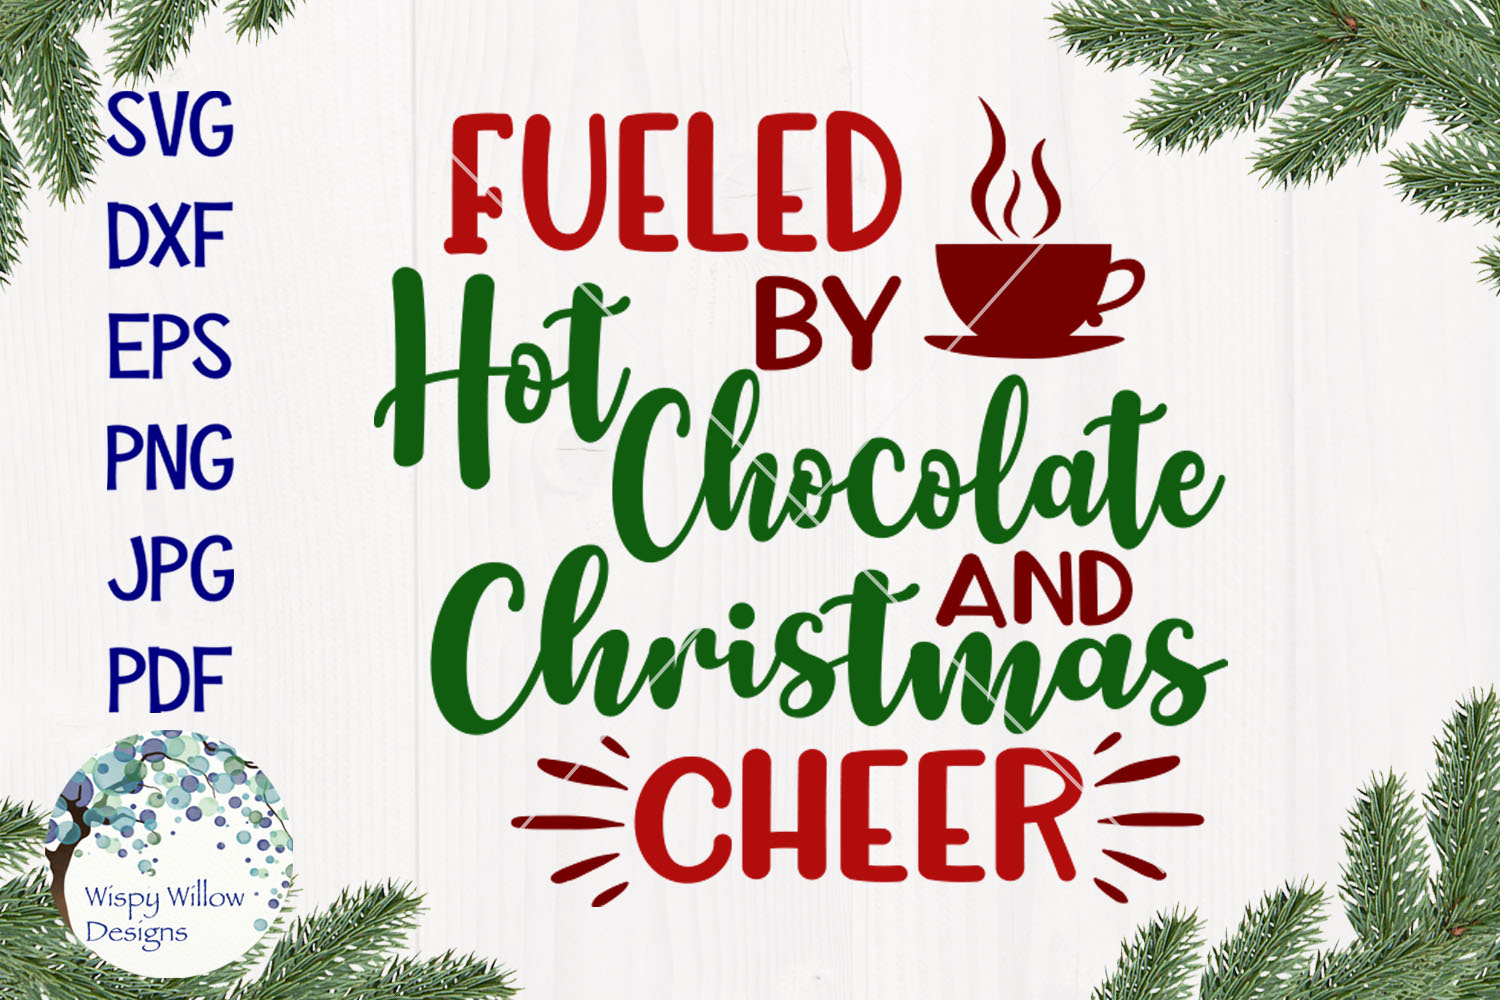 Fueled By Christmas Cheer | Christmas SVG Bundle example image 7